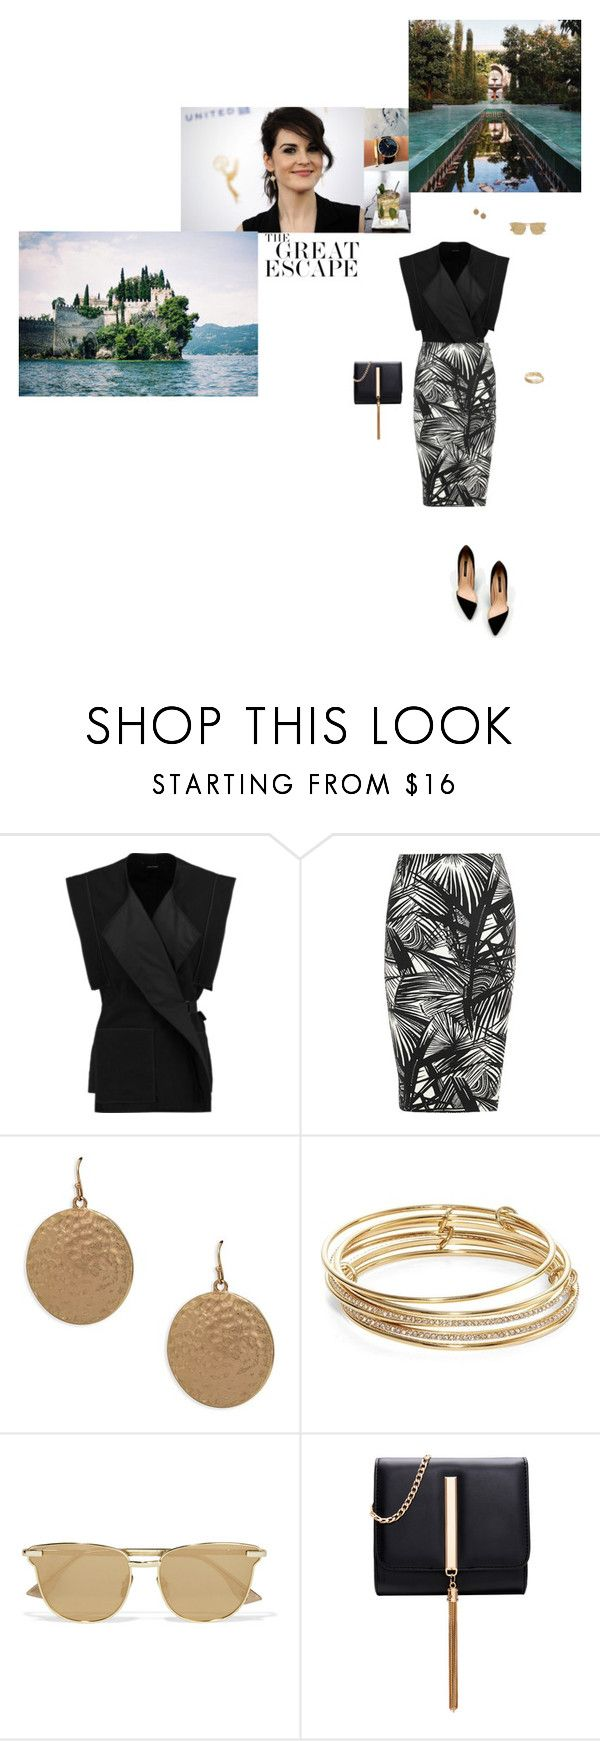 """""""I was living half a life before you met me."""" by class-in-the-corner-office ❤ liked on Polyvore featuring Isabel Marant, Elizabeth and James, Zara, Lauren Ralph Lauren, Kate Spade and Le Specs"""